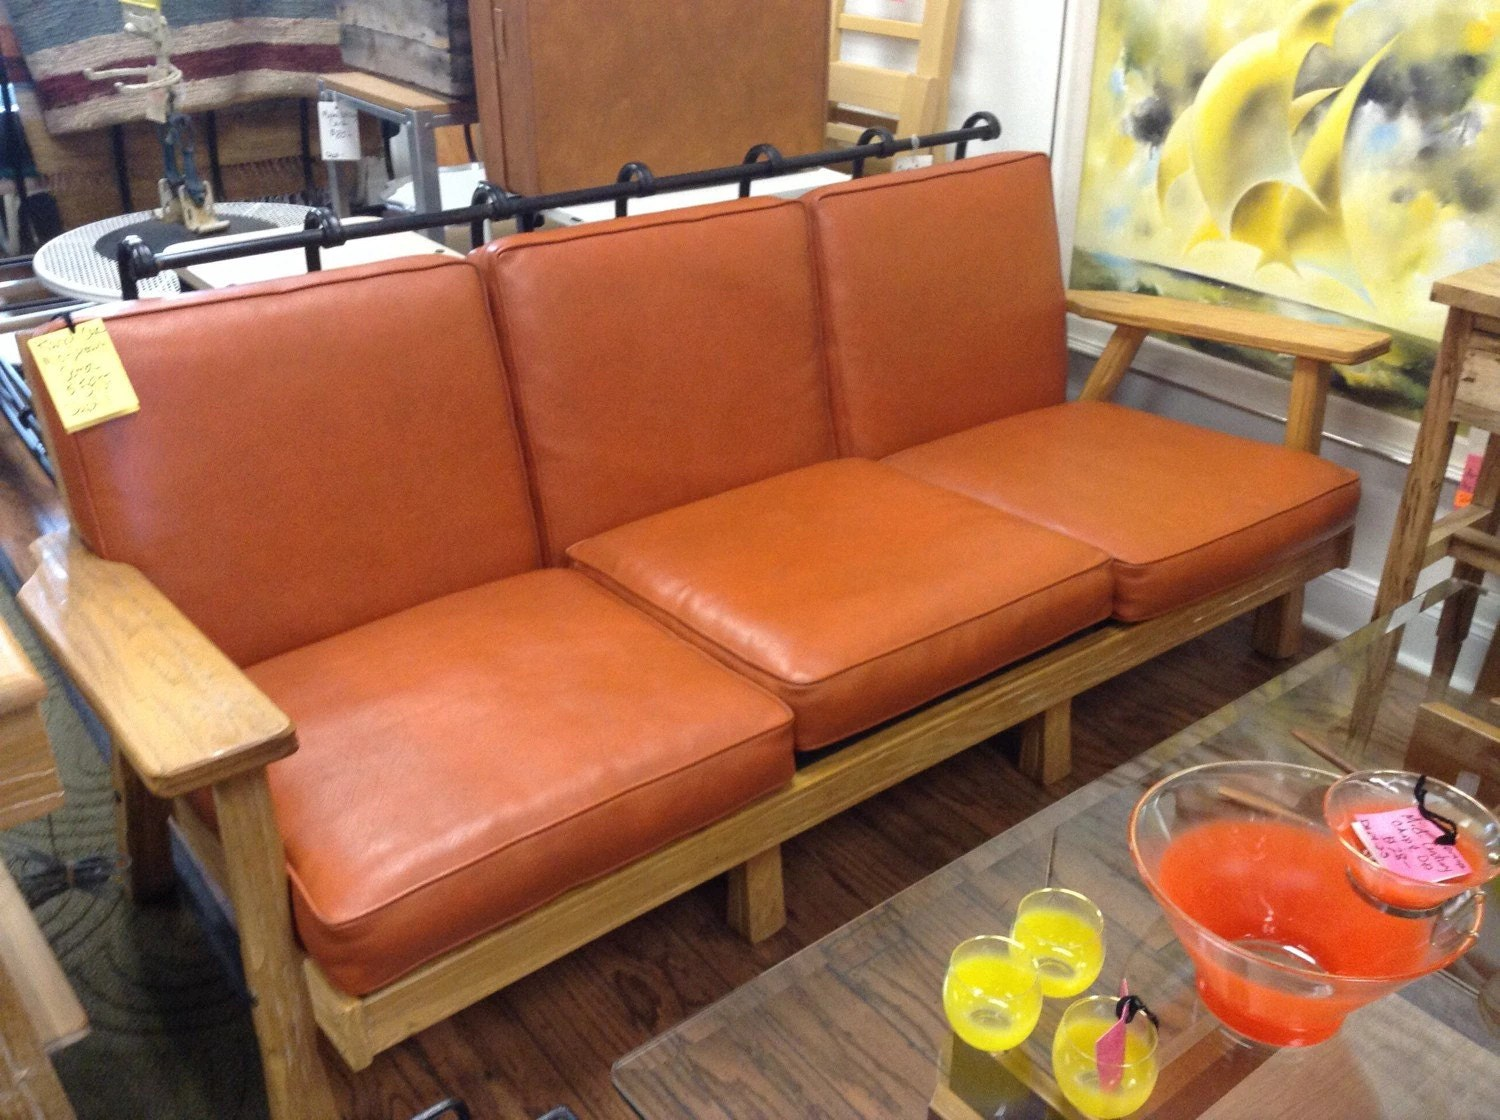 sofa san mateo gray chaise lounge mid century modern furniture ranch oak by